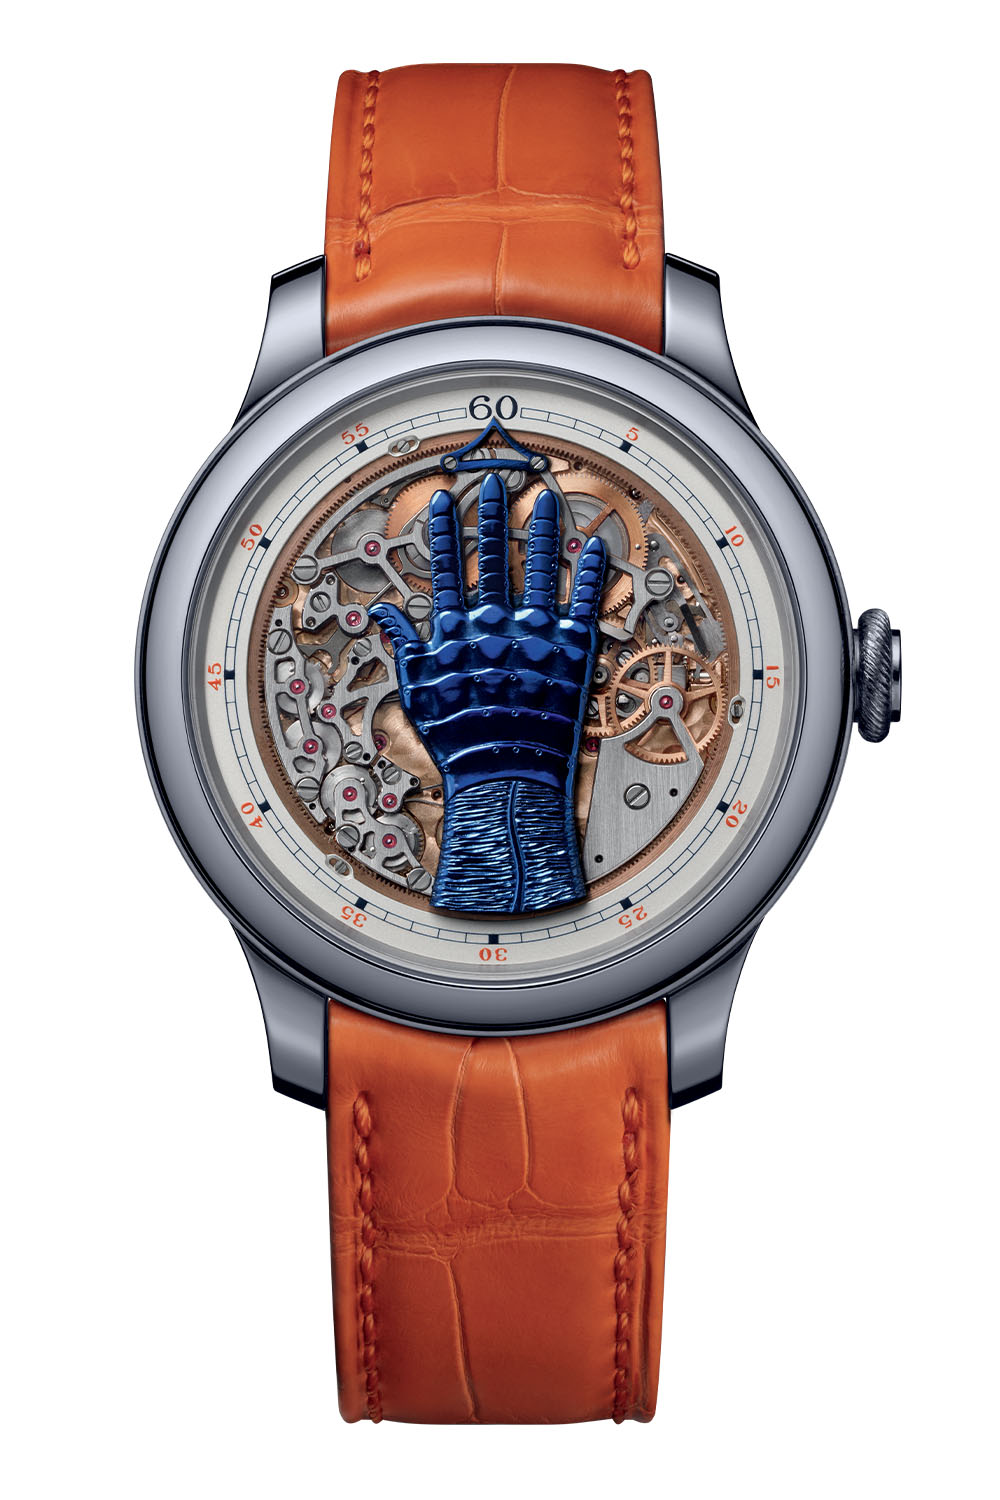 F.P. Journe FFC Blue for Only Watch 2021 Automaton Francis Ford Coppola - 6